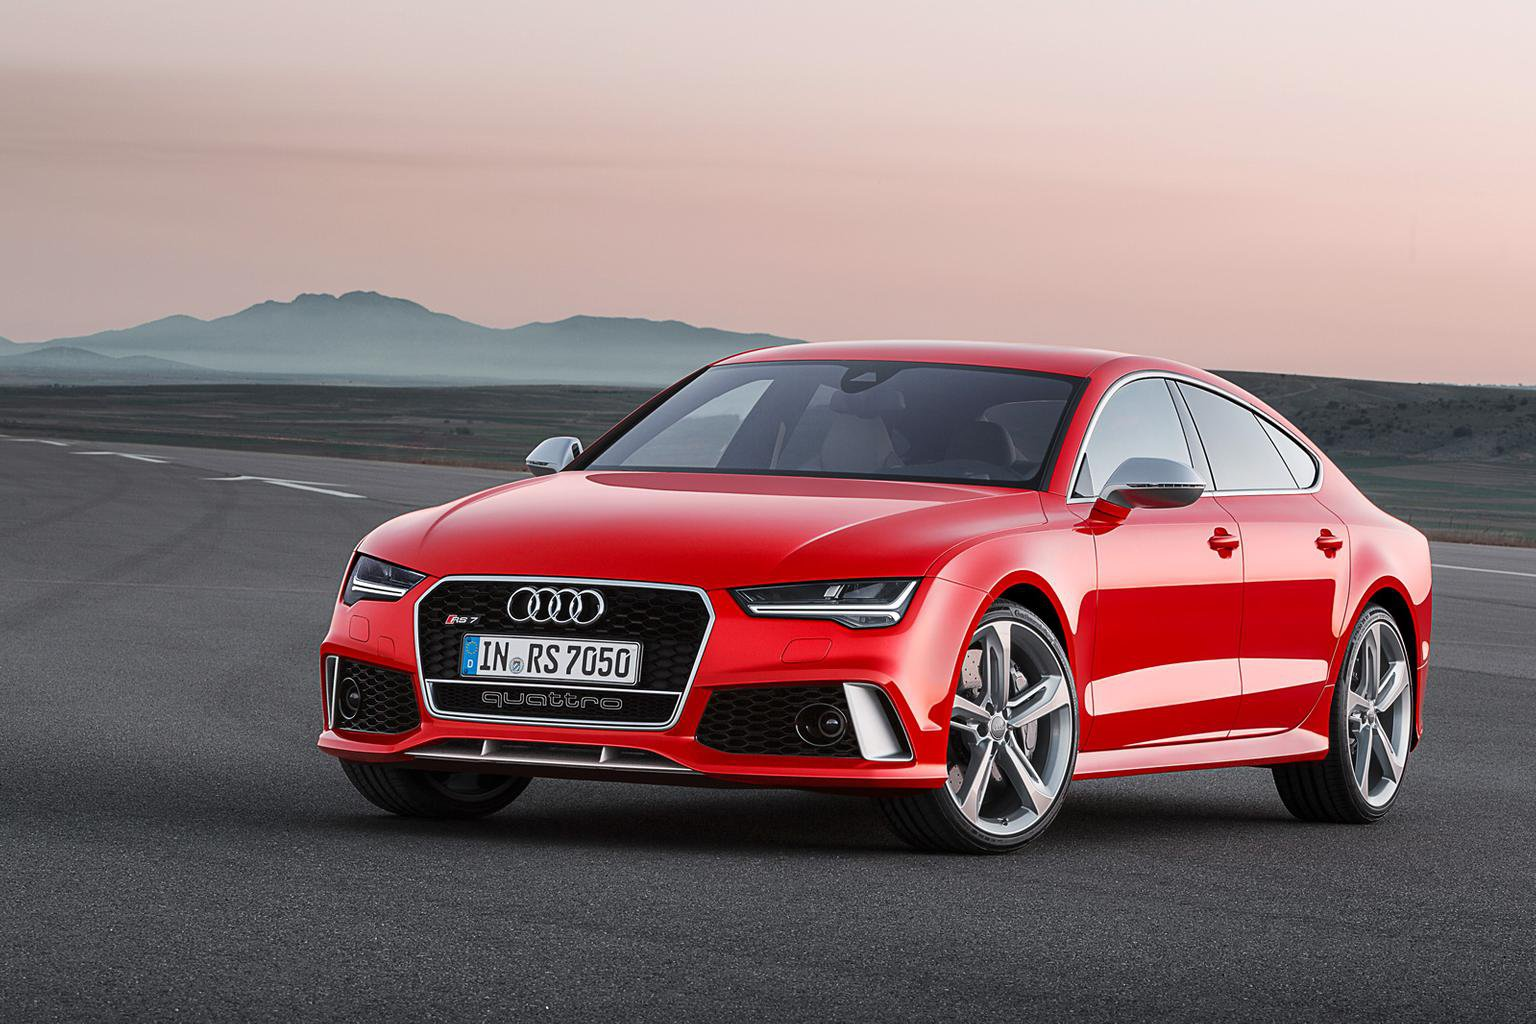 Audi RS7 face-lifted